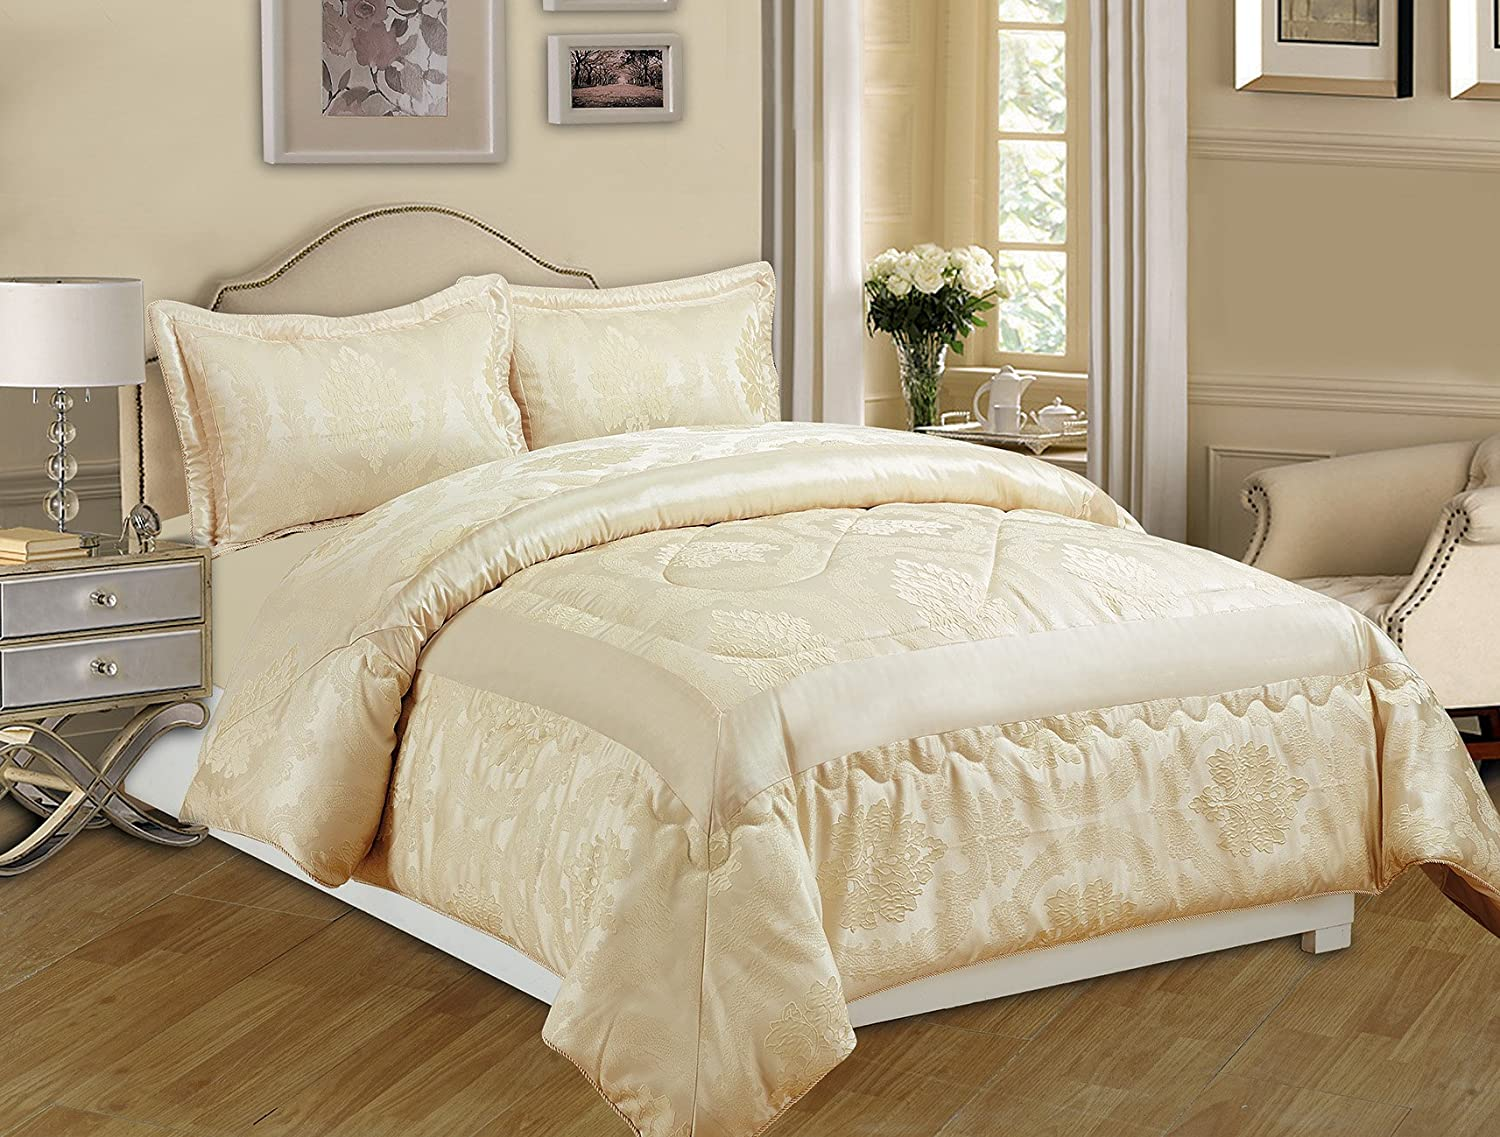 3 Piece Jacquard Quilted Bedspread Comforter, Pillow Shams,Luxury ... : how to make bedspread quilt - Adamdwight.com